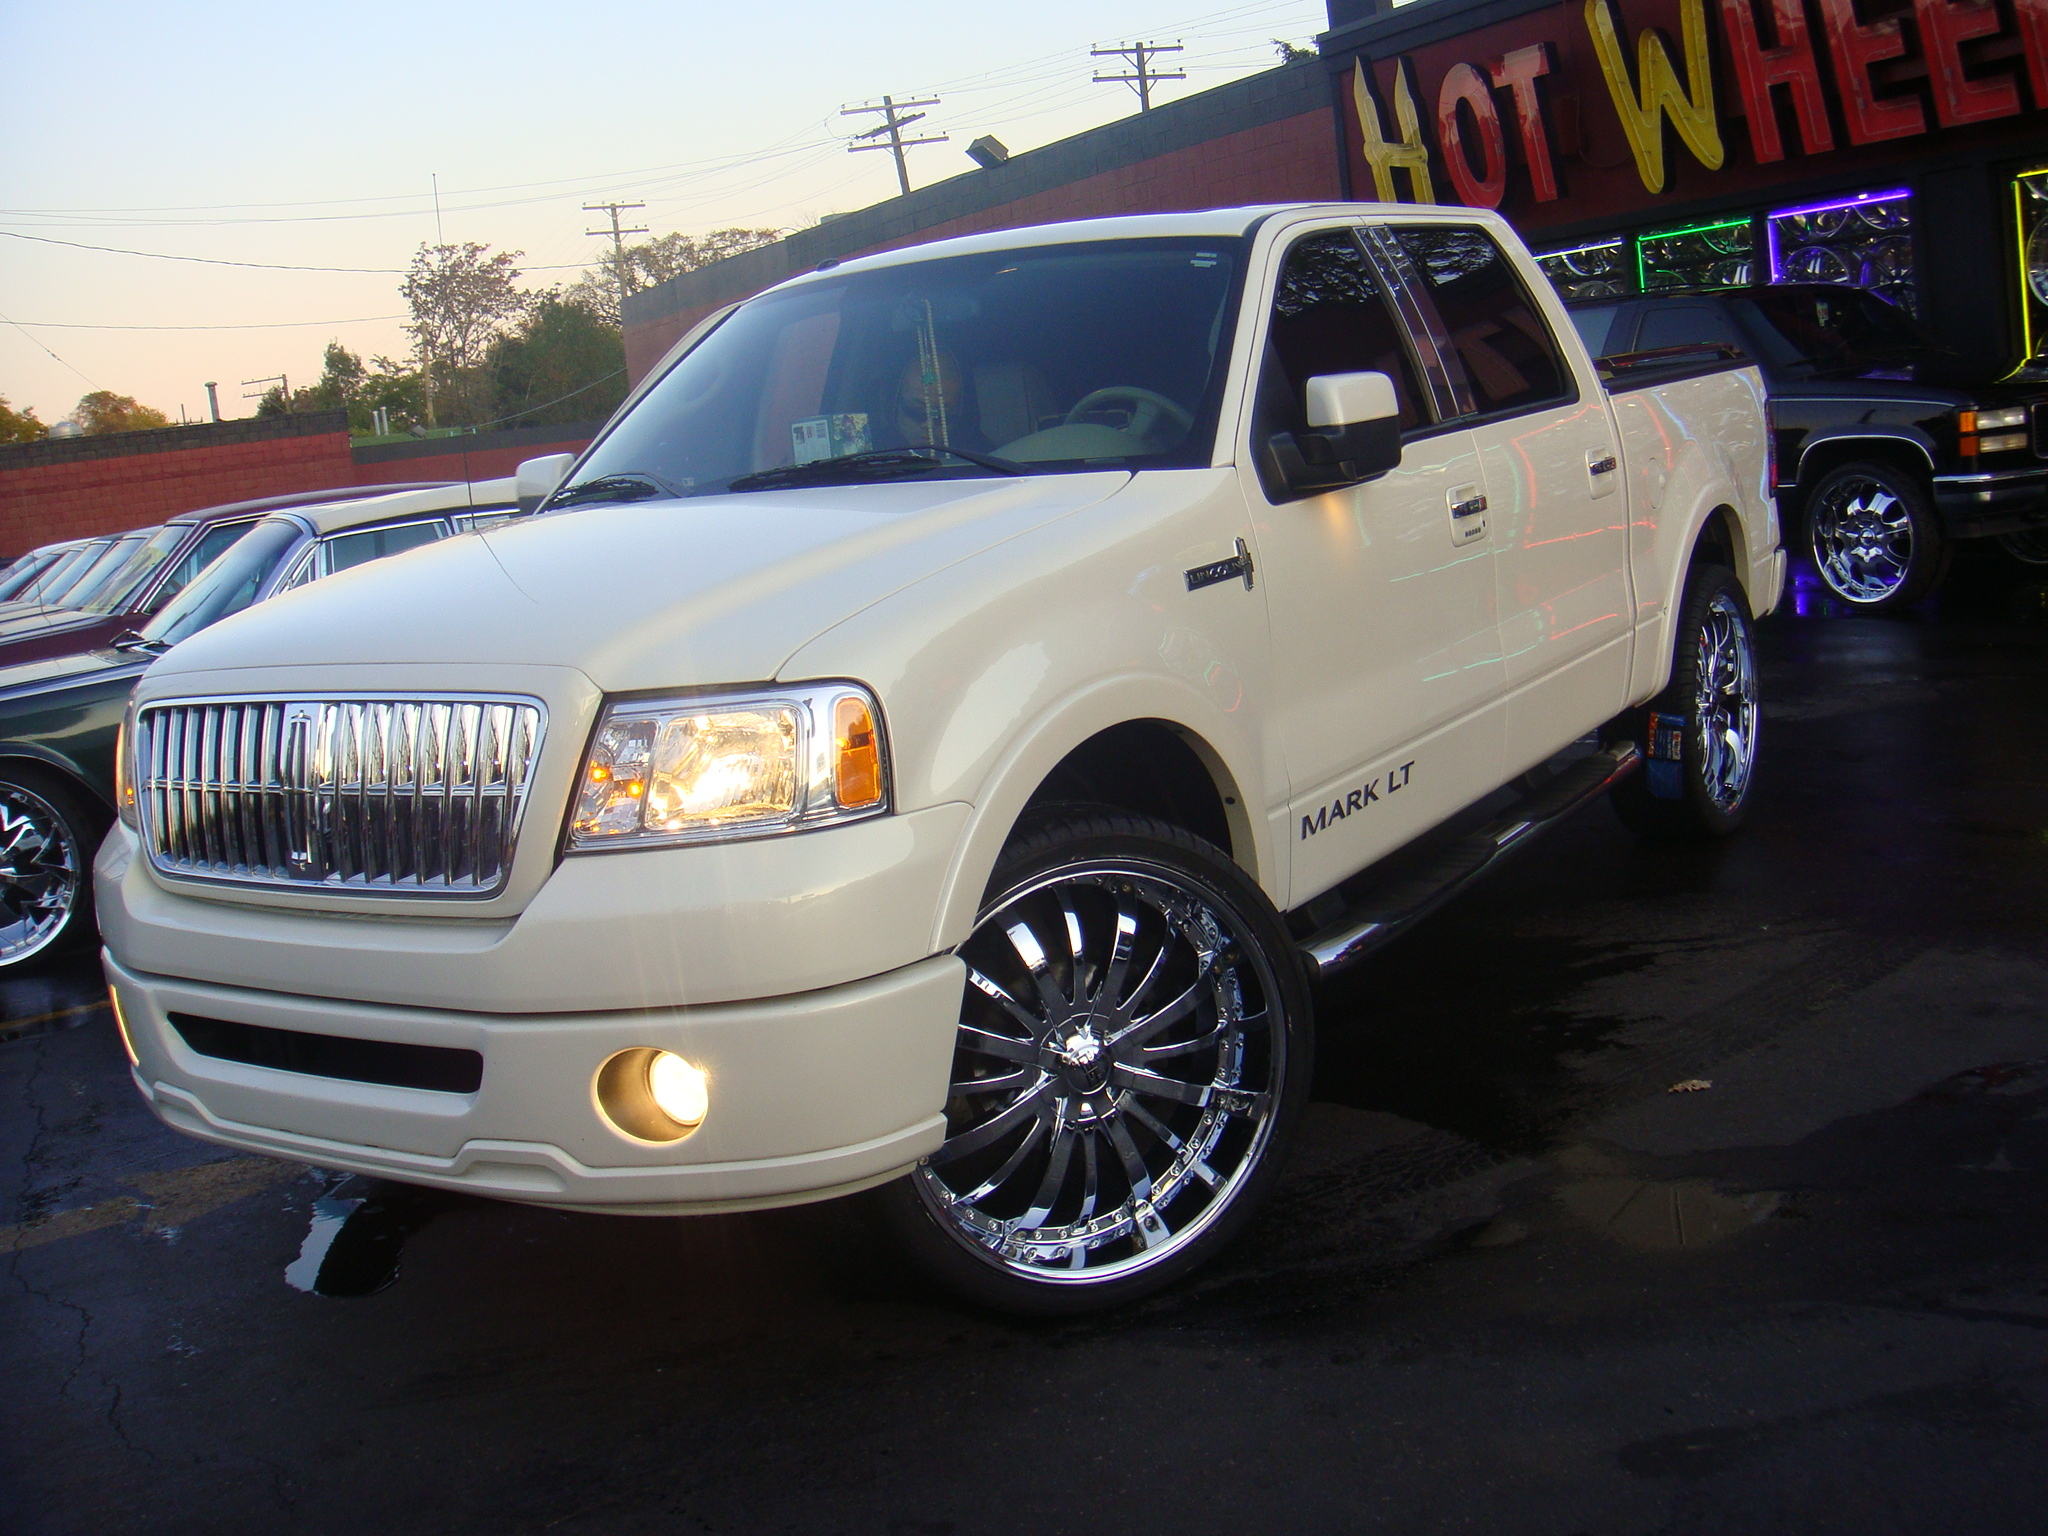 h0tb0y051 2008 Lincoln Mark LT